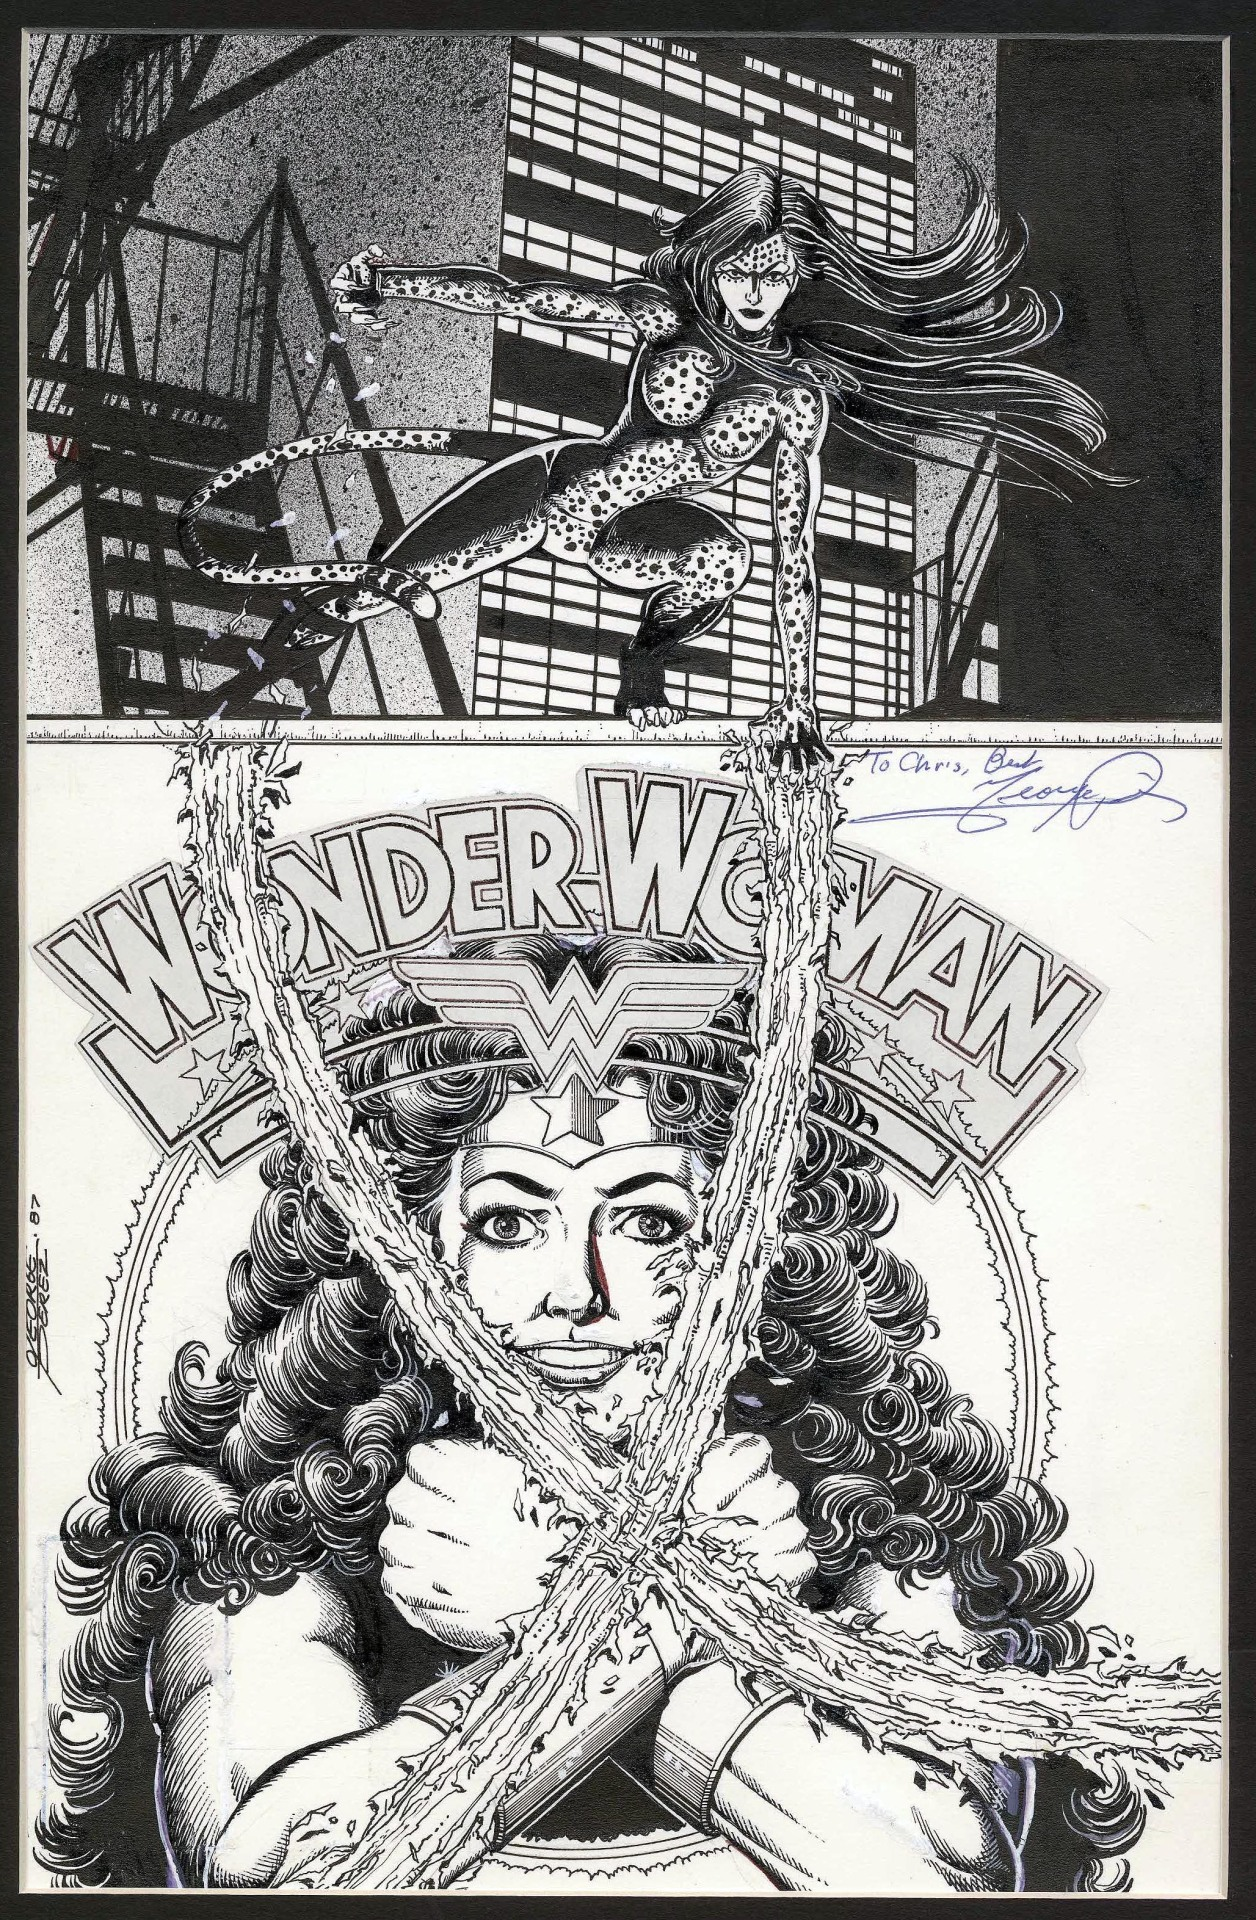 Original cover art by George Perez from Wonder Woman #9, 1987